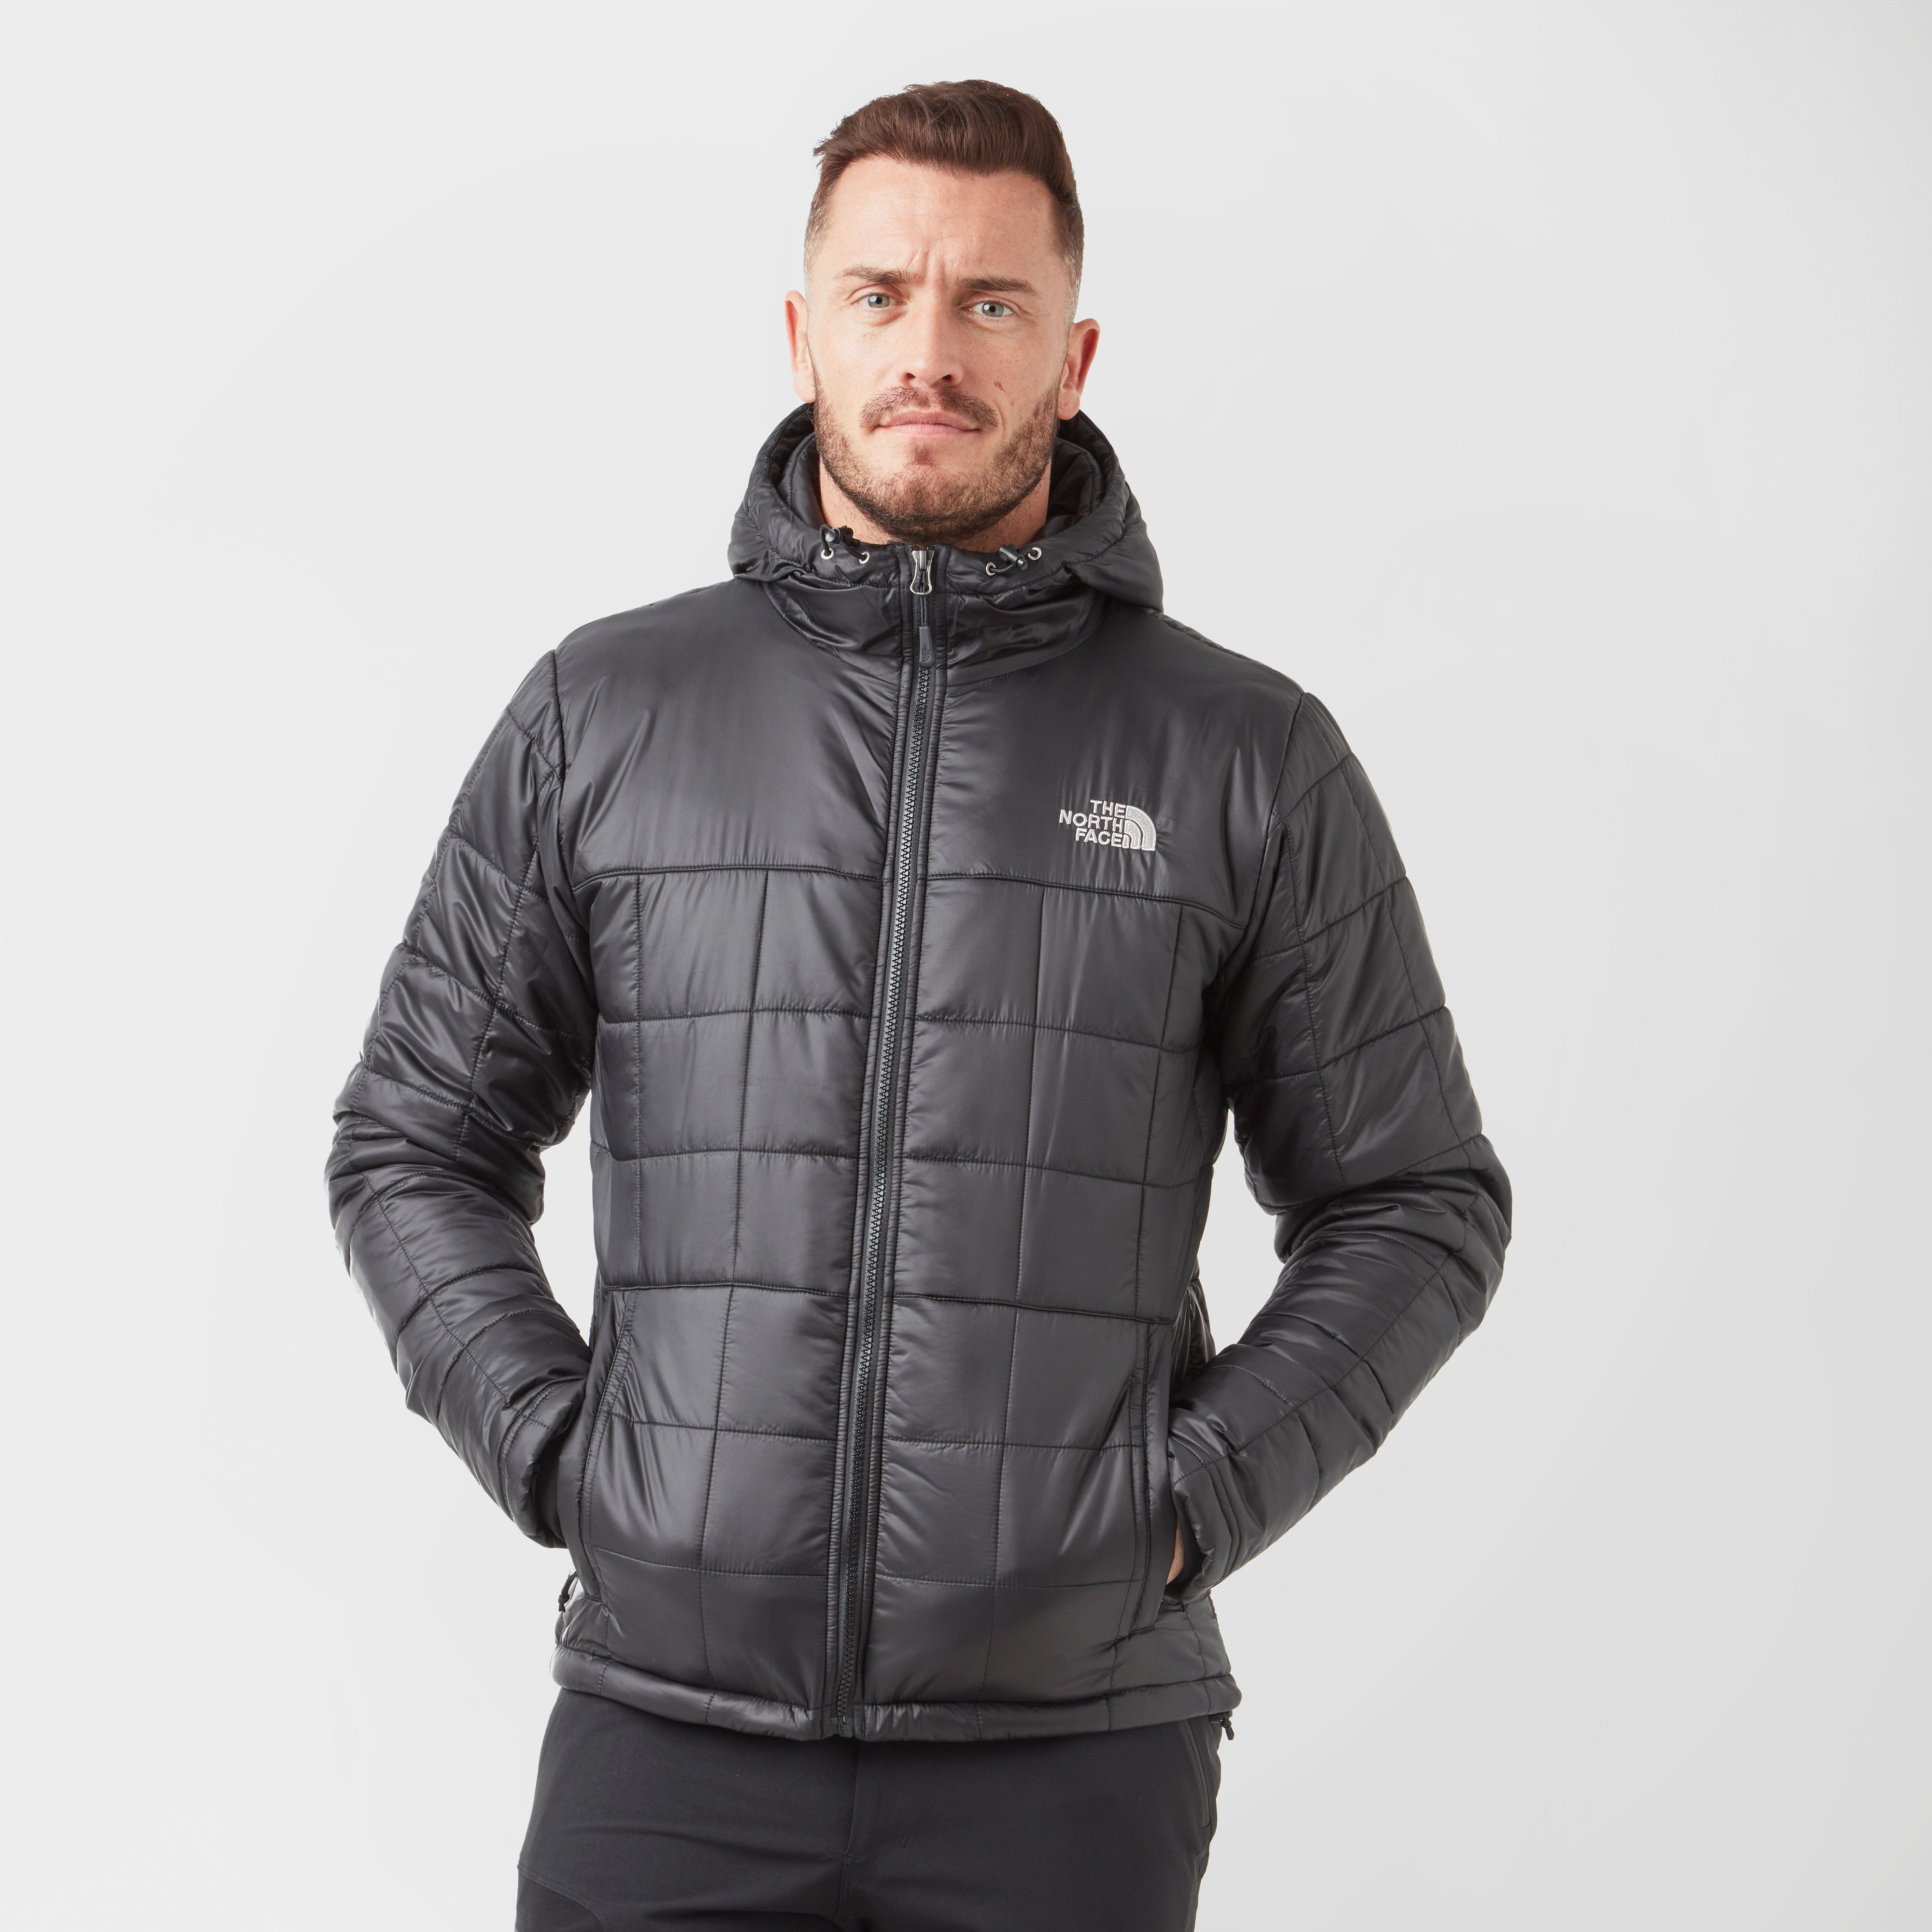 THE NORTH FACE Men's Exhale Insulated Jacket